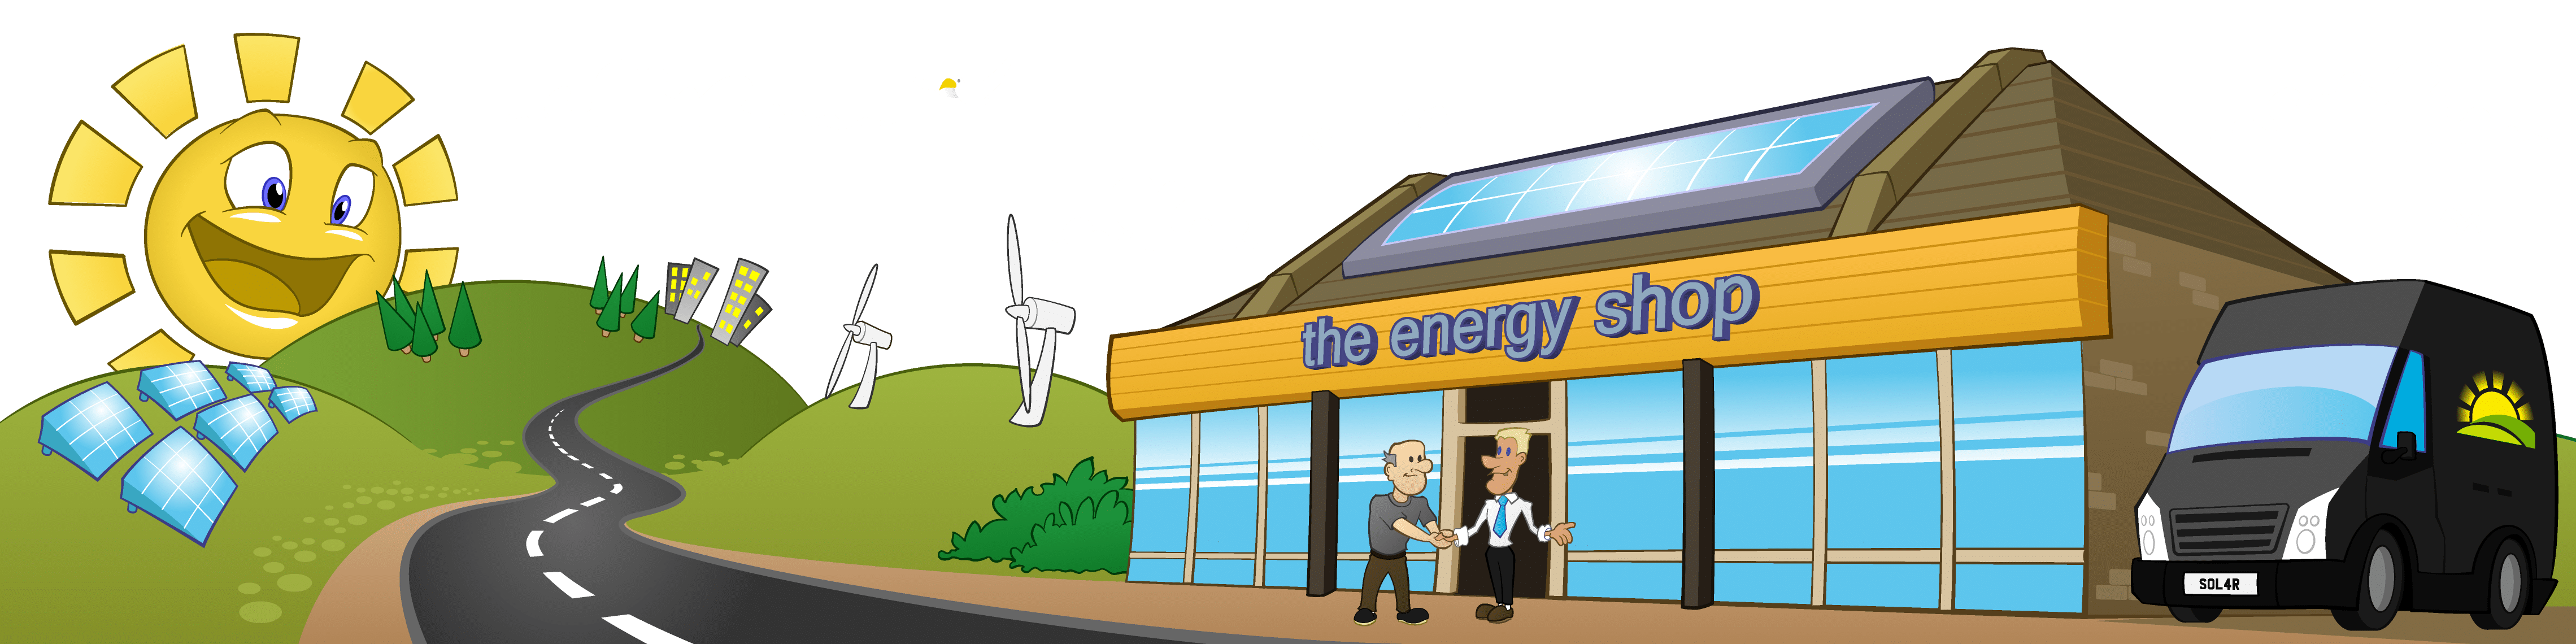 Greenscape Energy - Renewable Energy Company Based In Ipswich, Suffolk